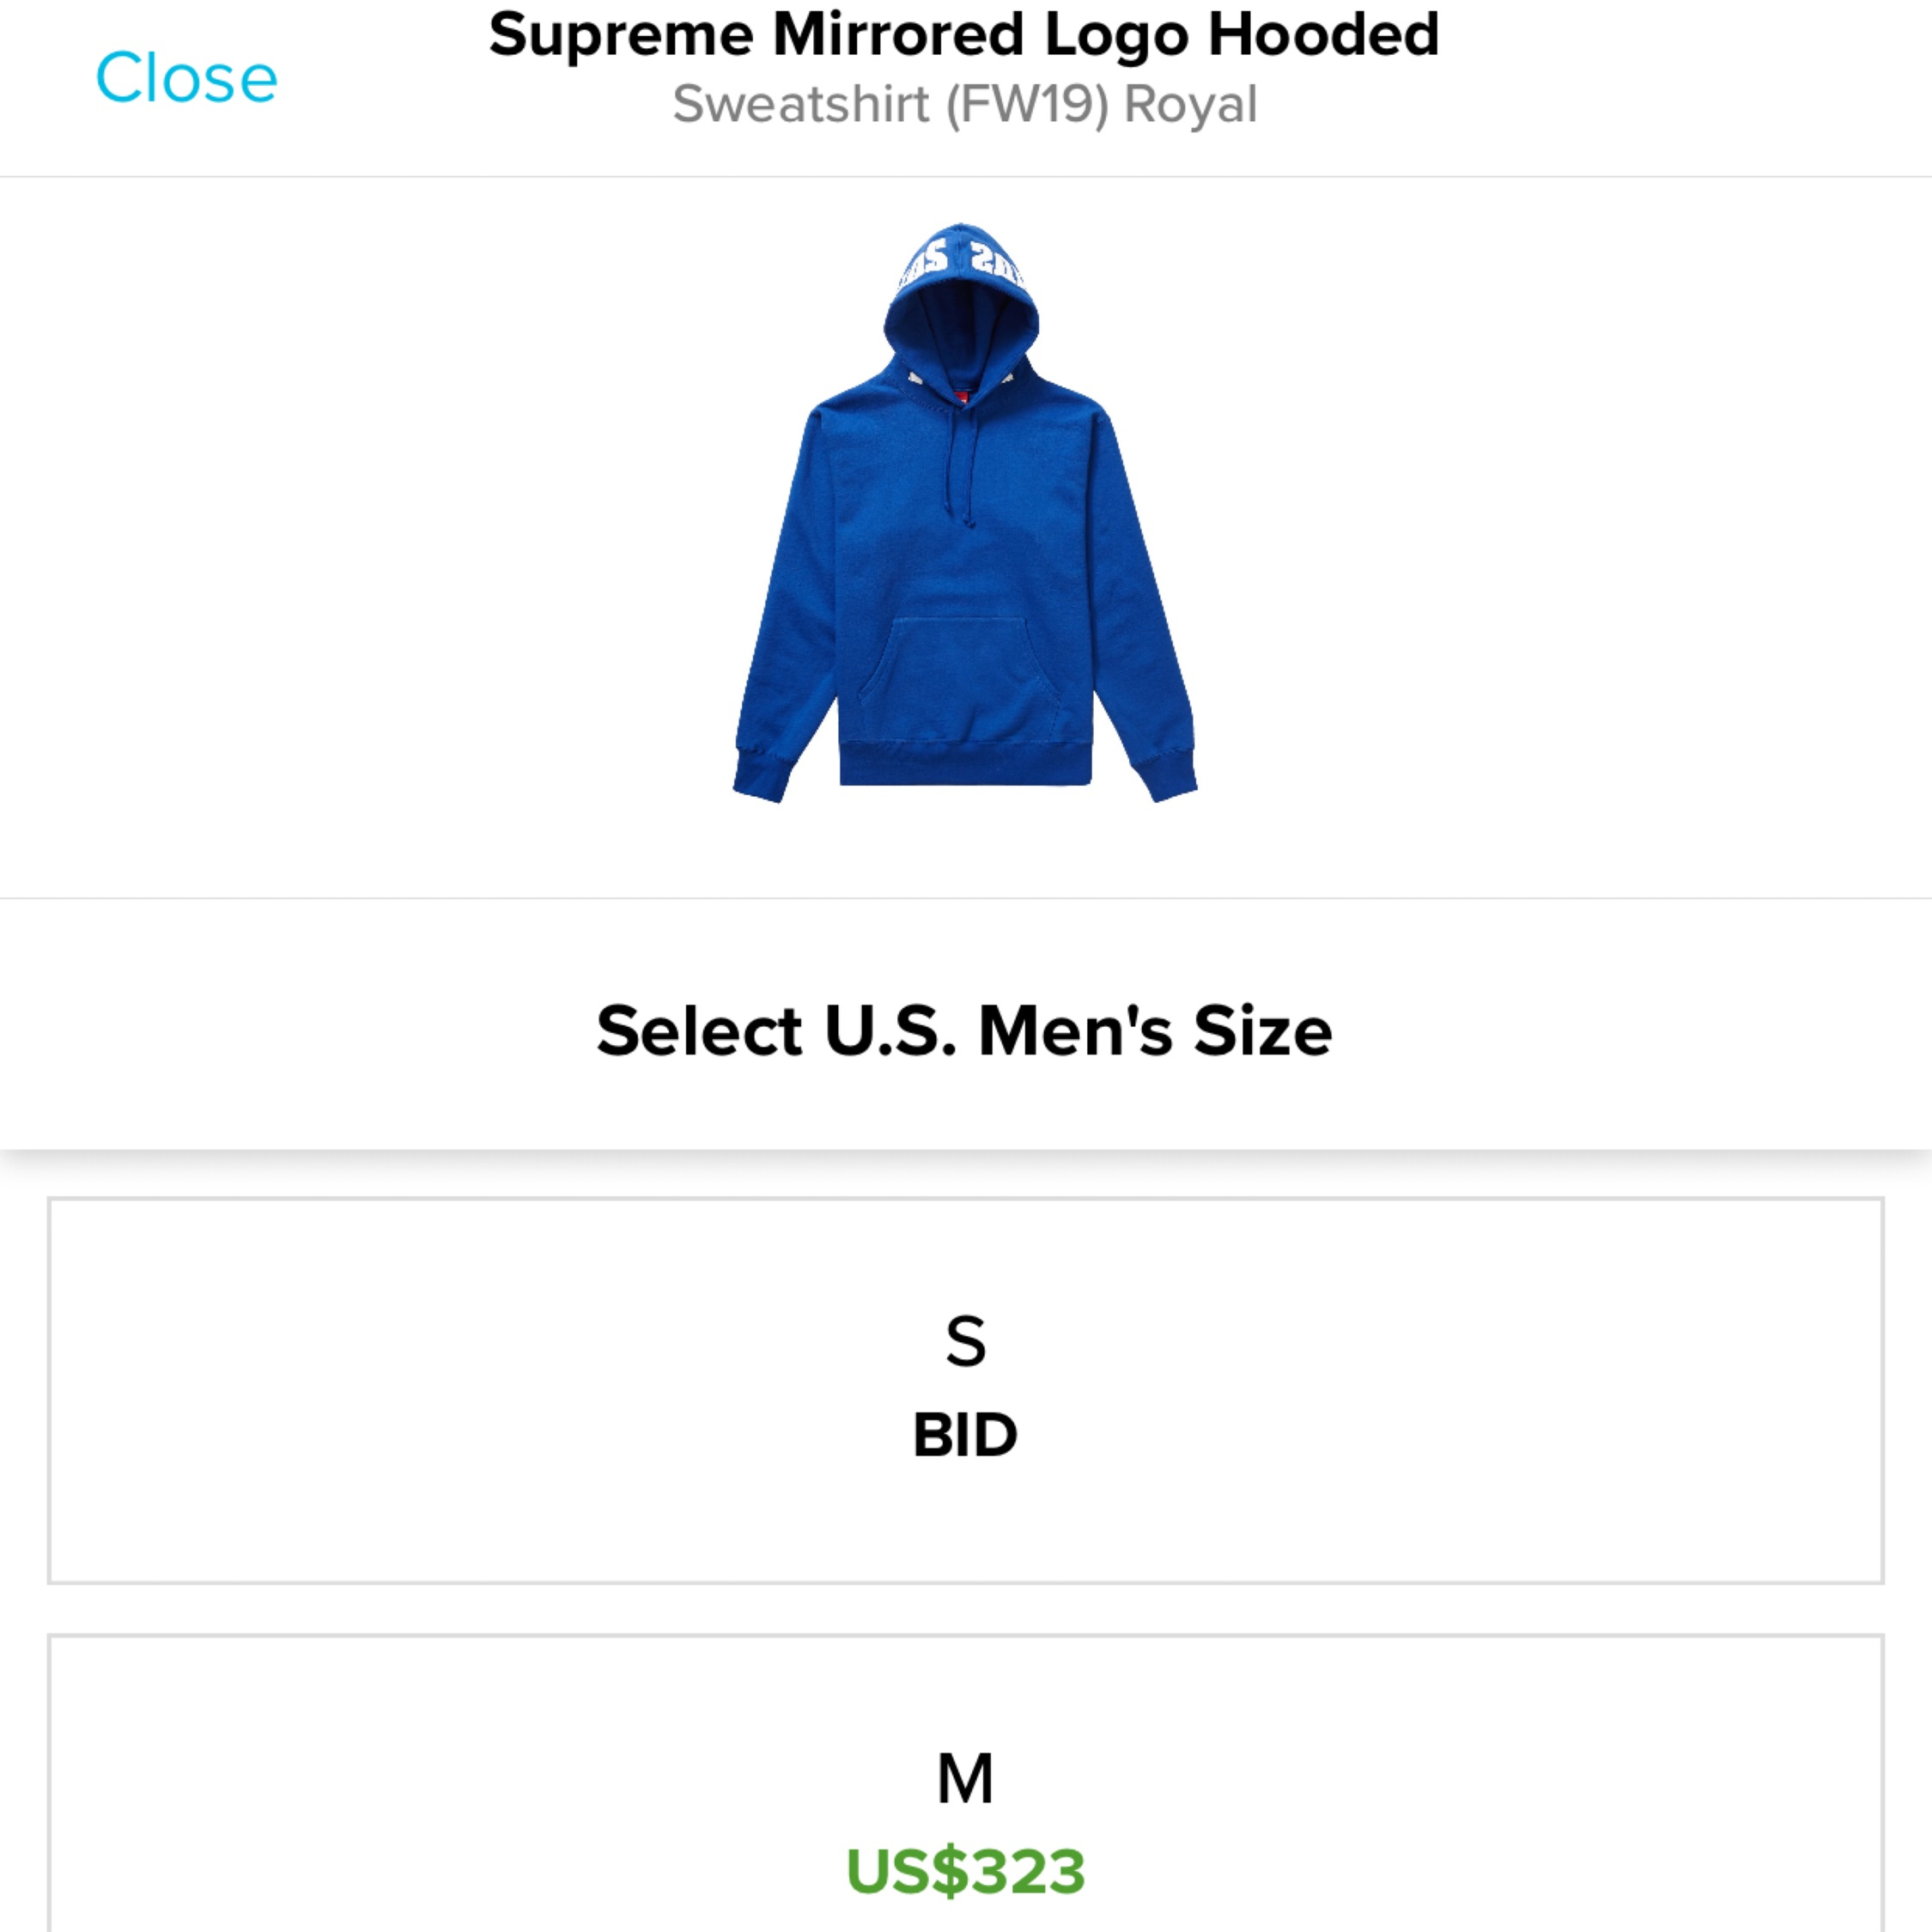 Supreme Mirrored Logo Hooded Sweatshirt (FW19) Royal